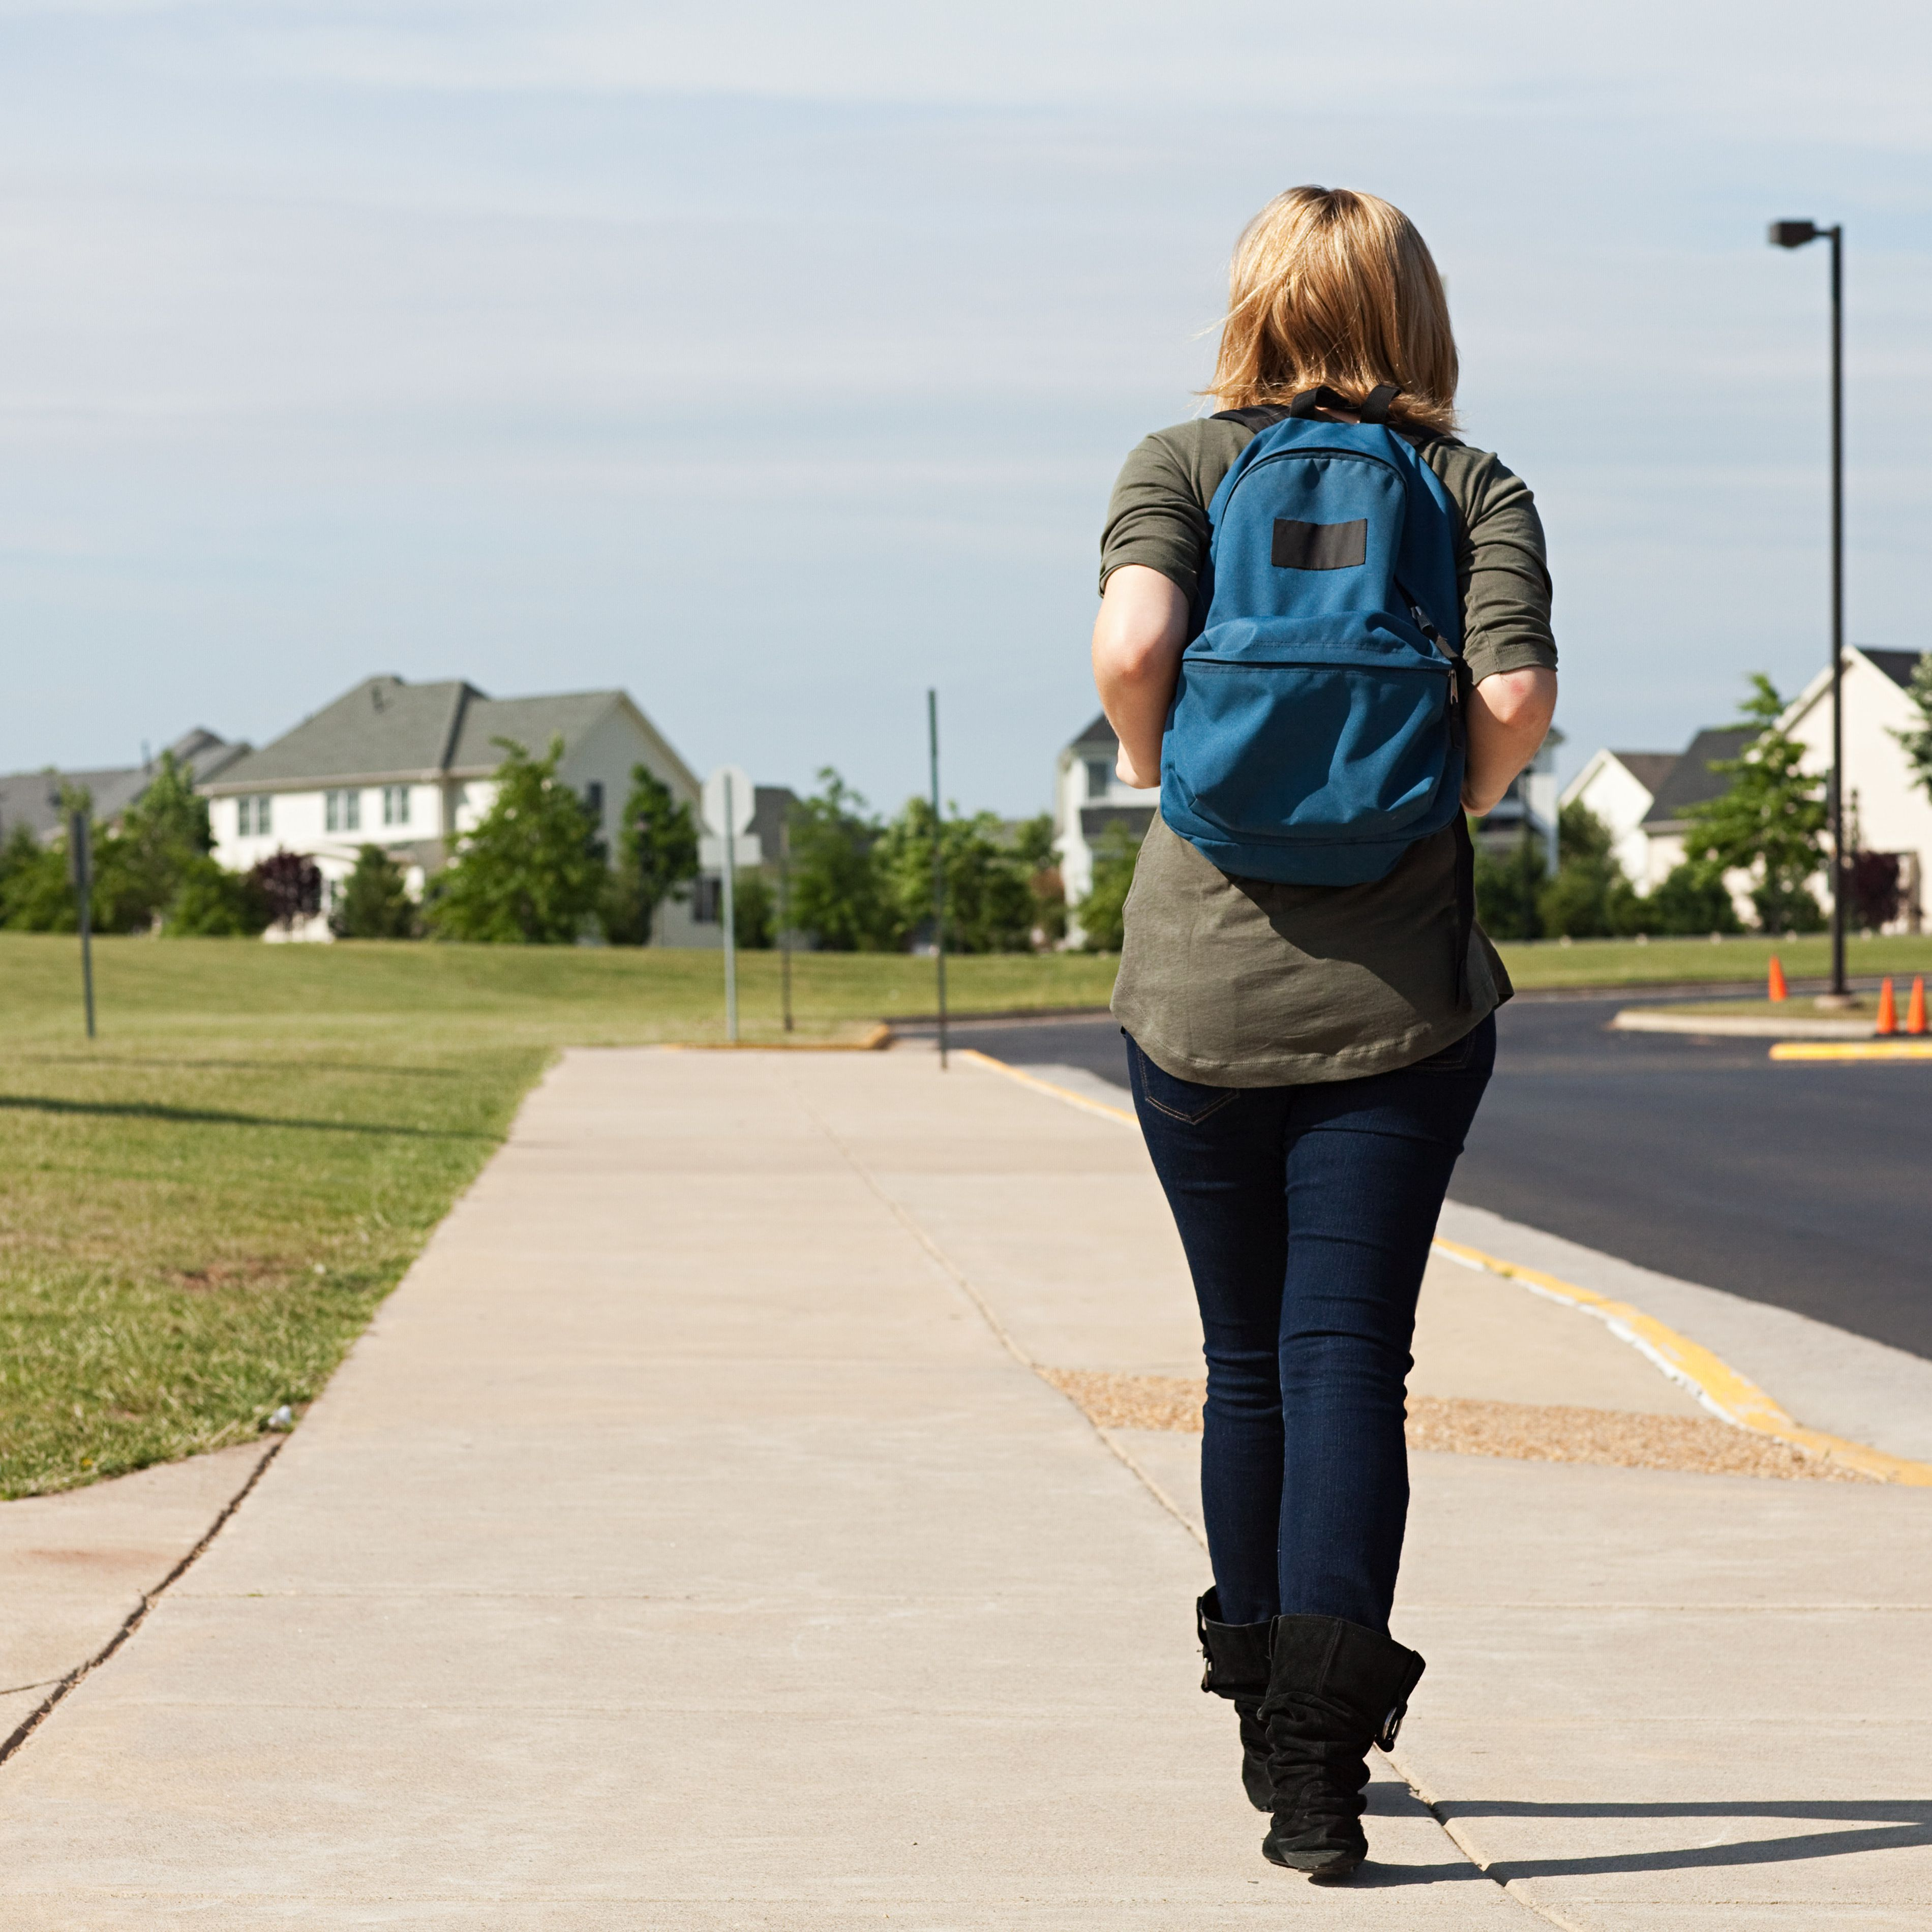 Suspending Little Kids Can Do More Harm >> What To Do When Your Child Is Expelled From School